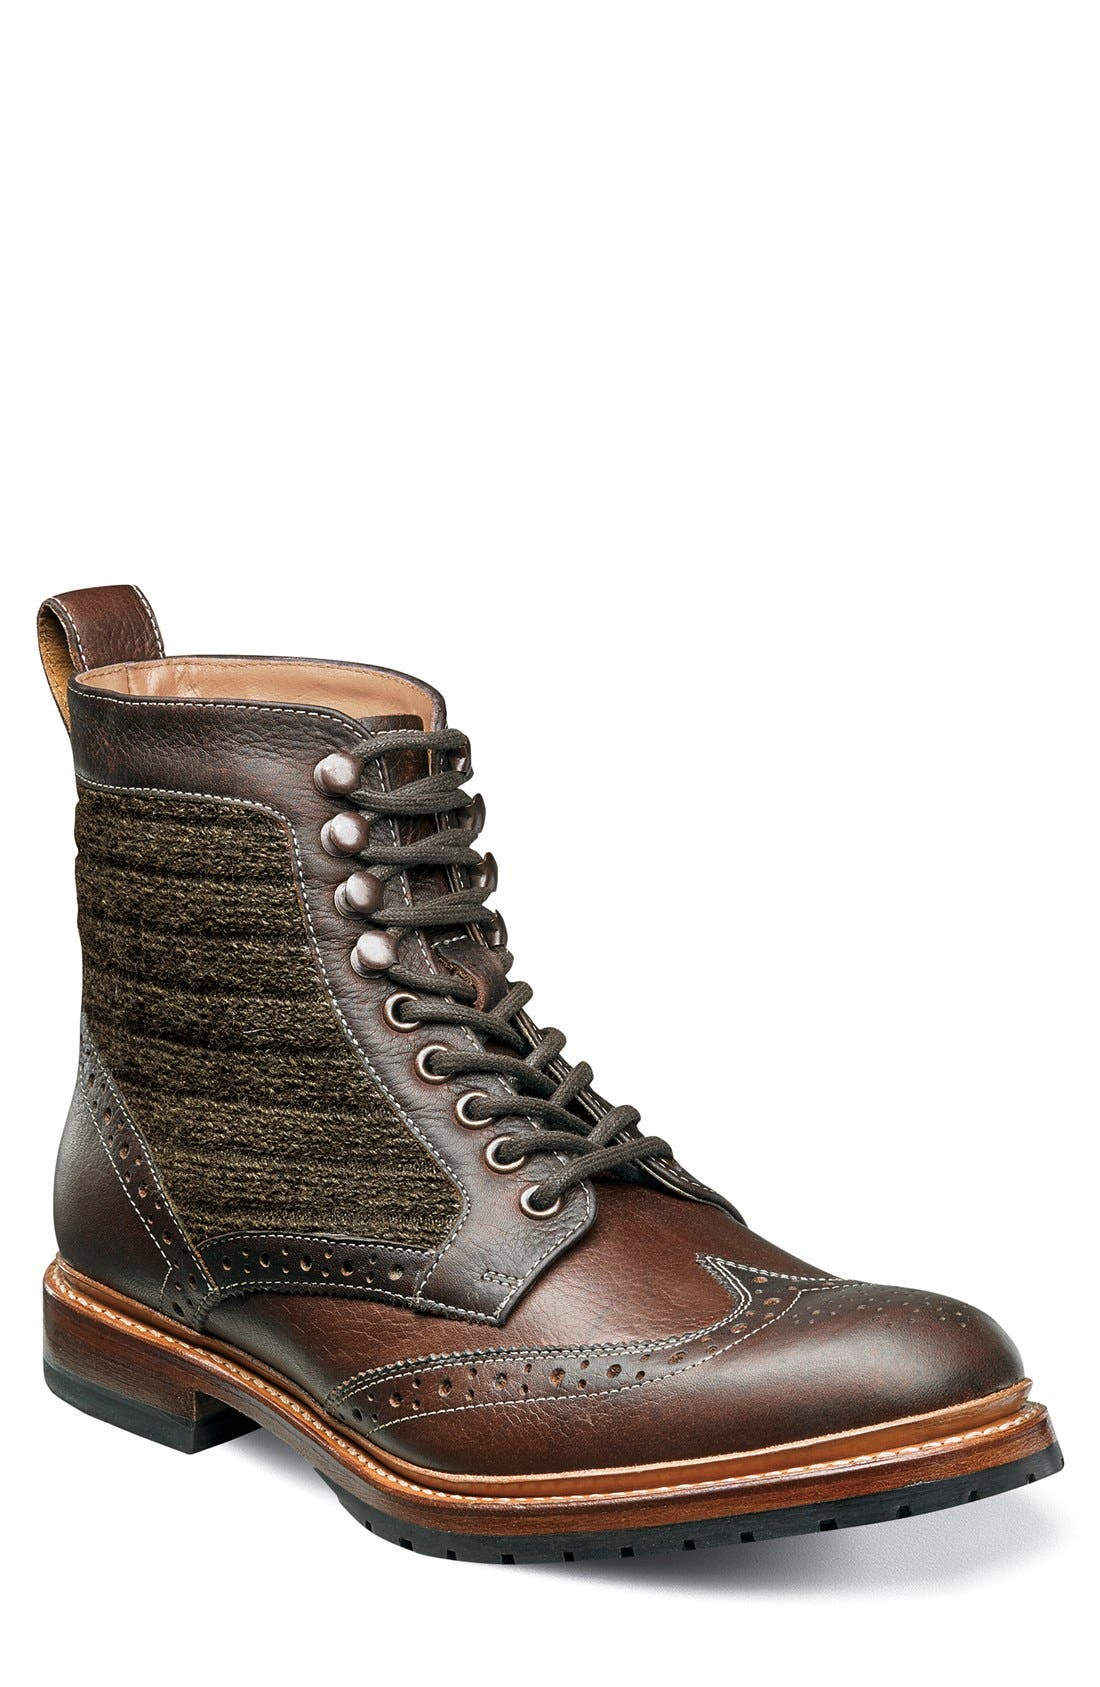 Alternate Image 1 Selected - Stacy Adams Madison II Wingtip Boot (Men)